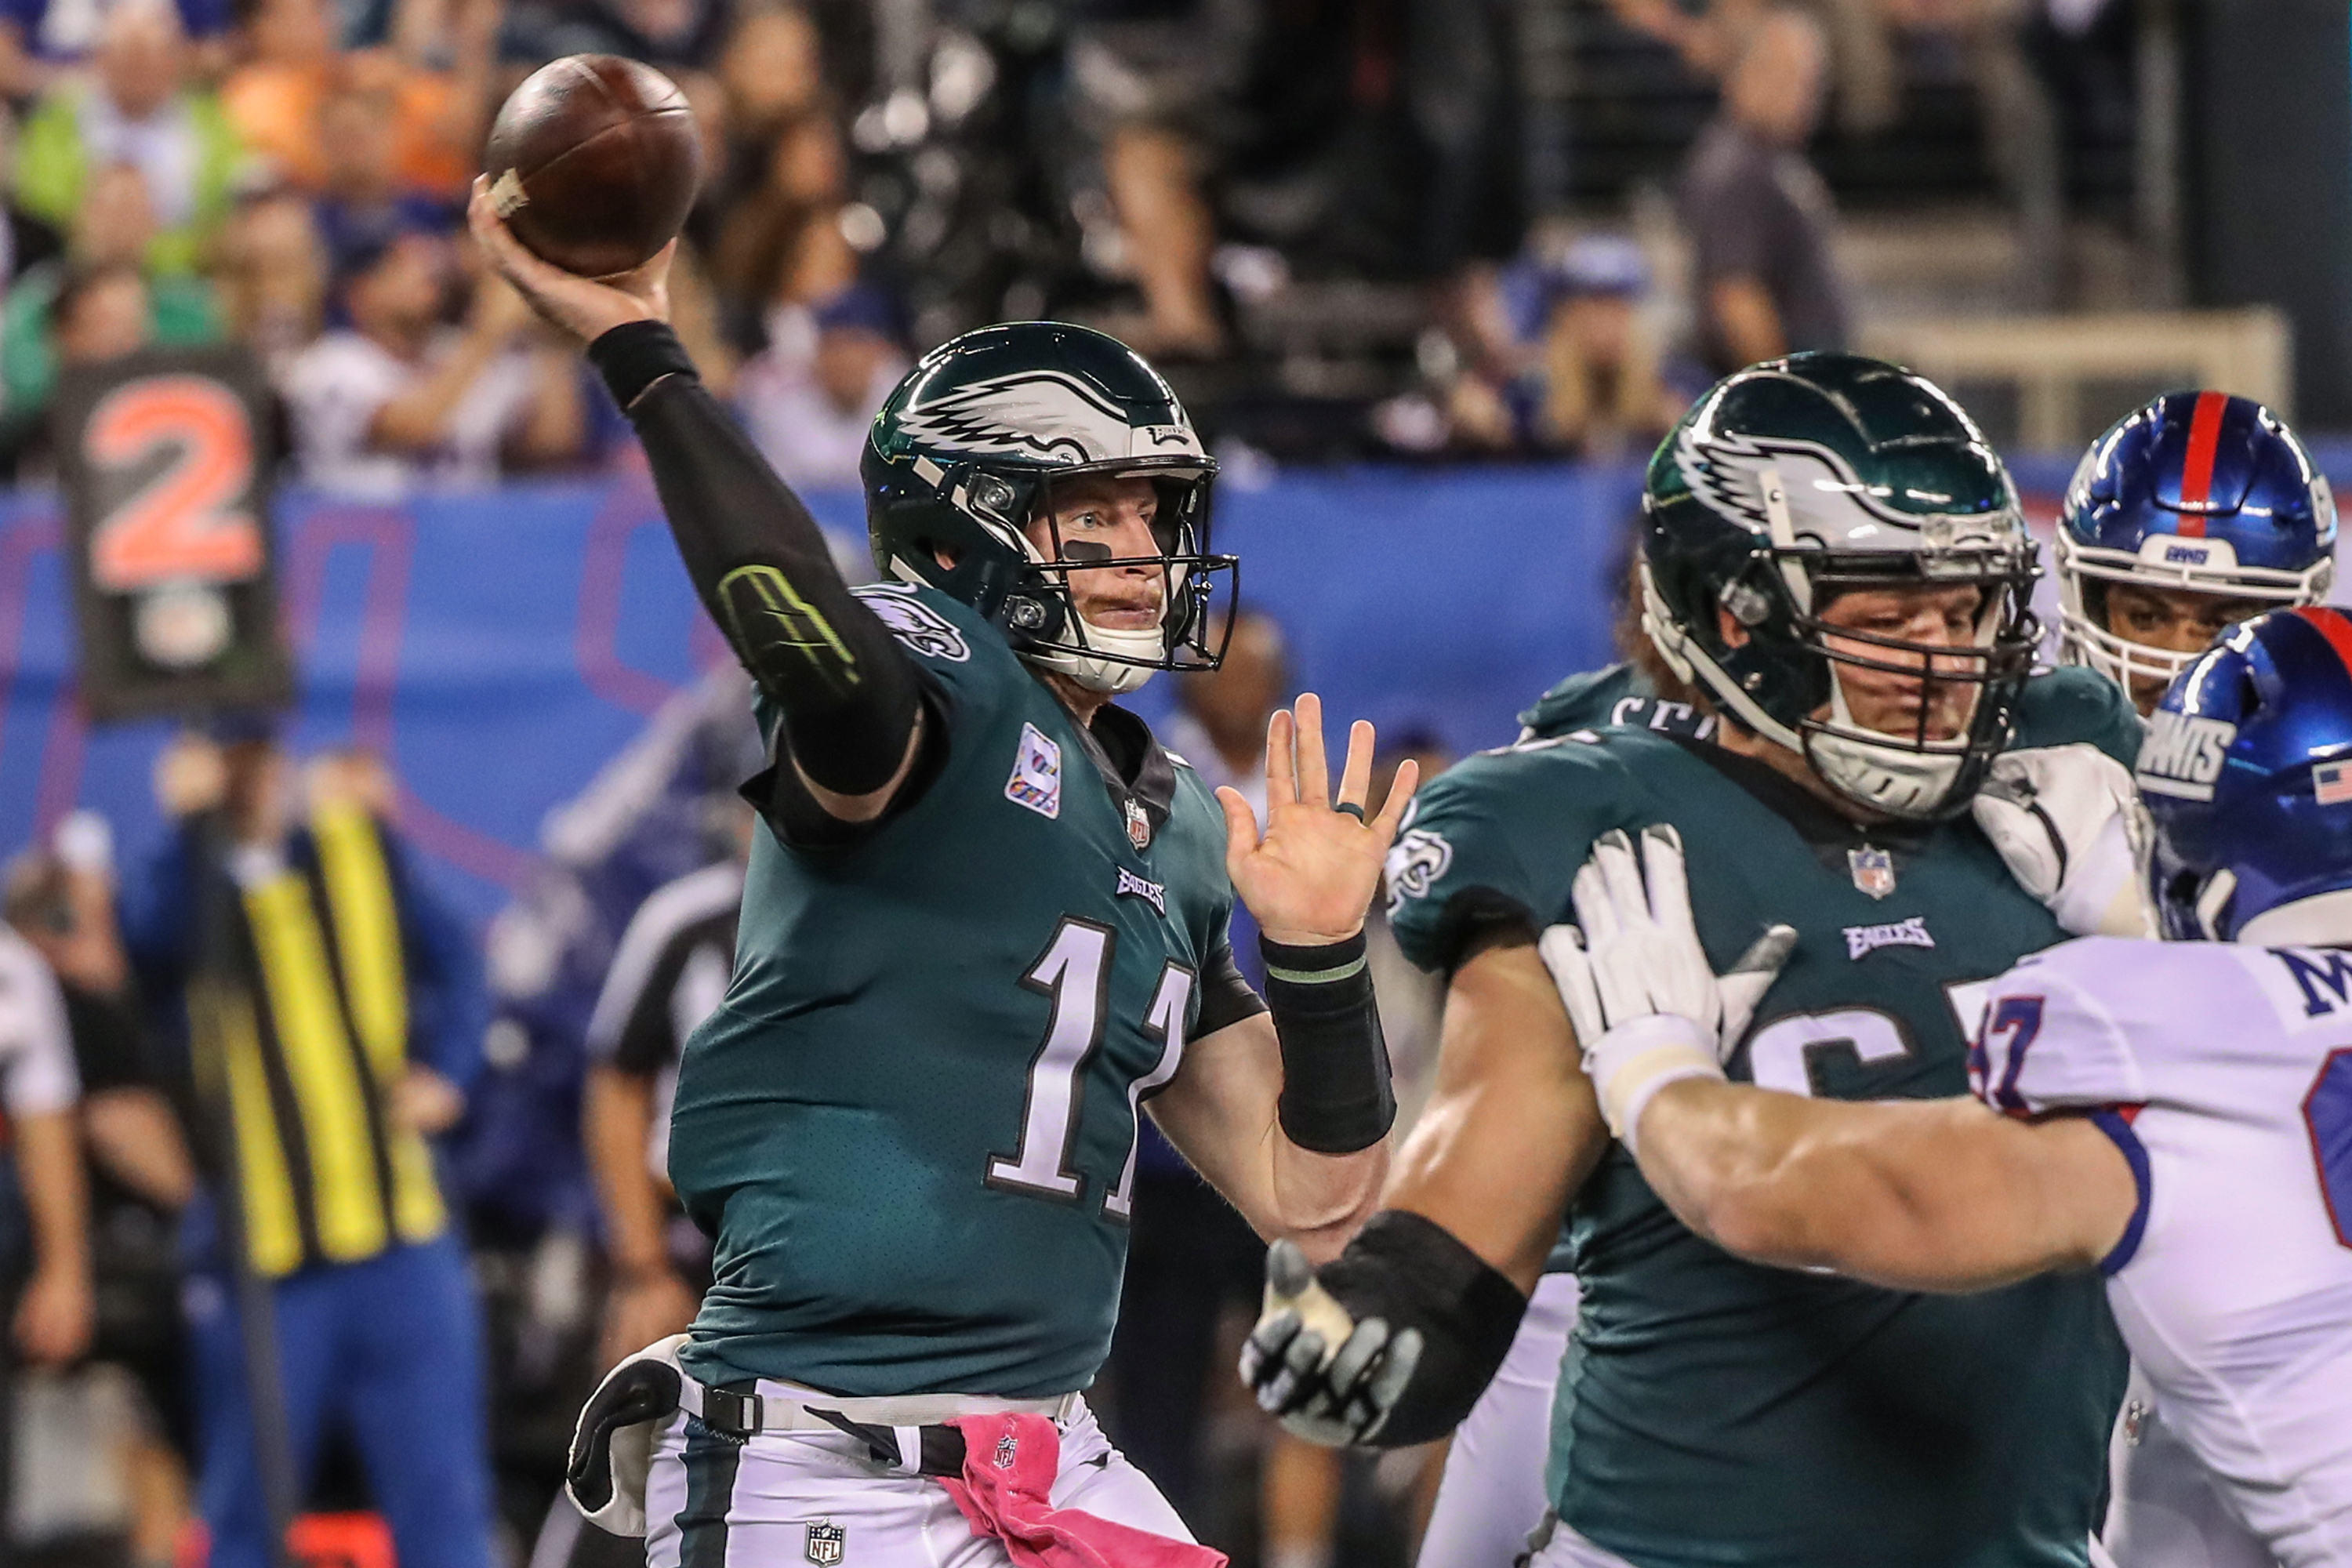 As Eagles quarterback Carson Wentz, left, steps up to pass the ball Eagles tackle Lane Johson, right, keeps a Giant defender at bay so Wentz can have time to throw in Thursdays game against the Giants on October 11, 2018. MICHAEL BRYANT / Staff Photographer